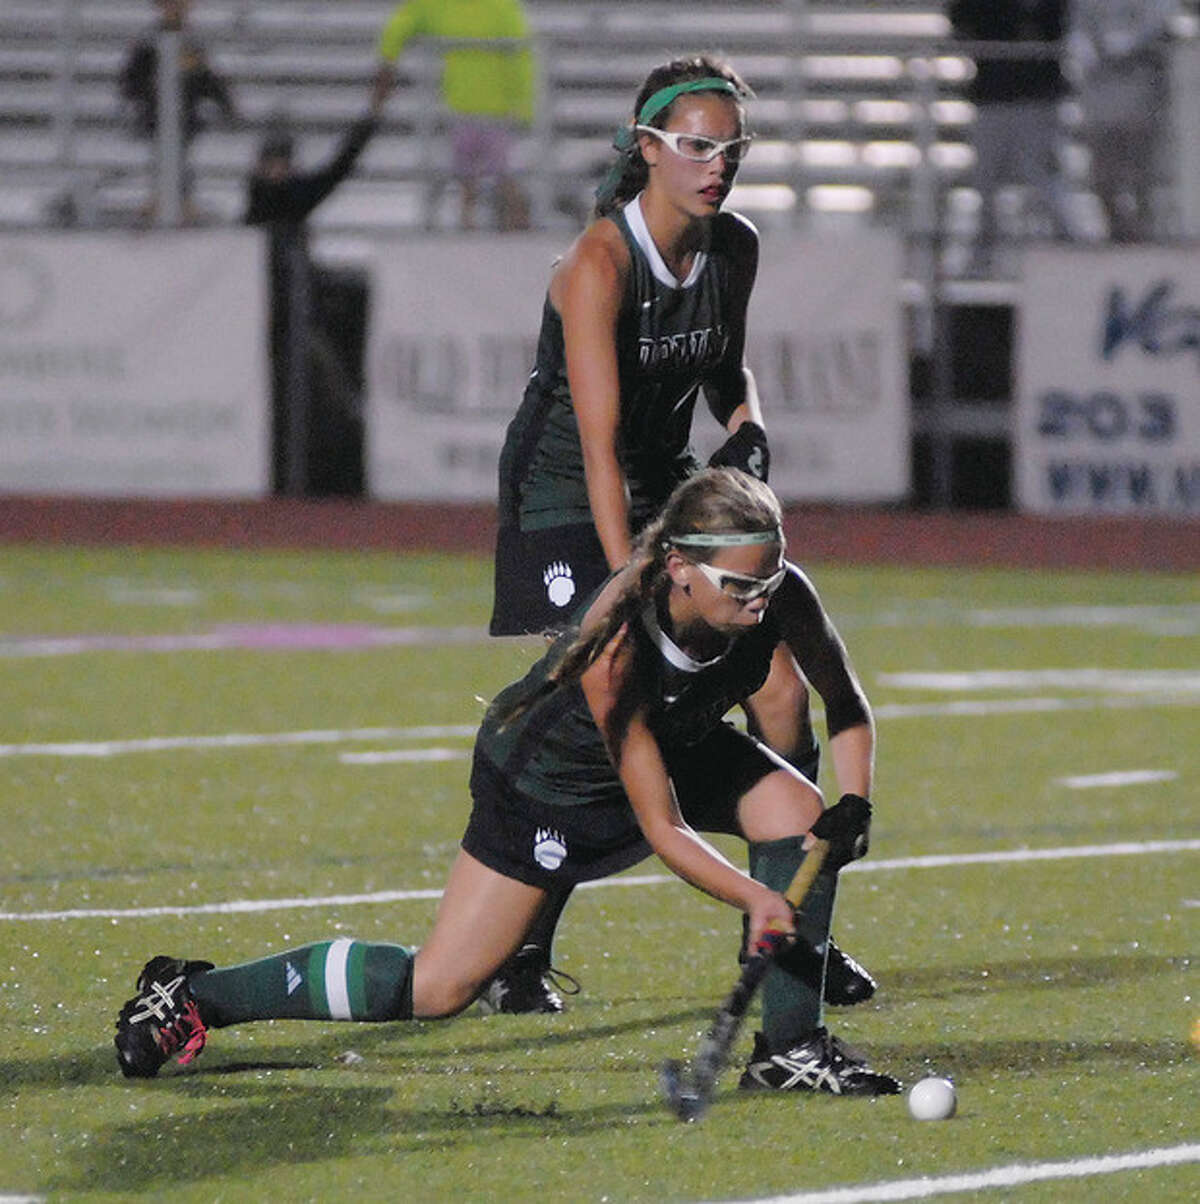 Hour photo/John Nash Norwalk's Greta McConnell, front, gets low to fire off a shot as teammate Sam Bartush looks on during a penalty corner in the second half of Tuesday's FCIAC field hockey game against Trumbull. The Bears and Eagles tied at 1-1.